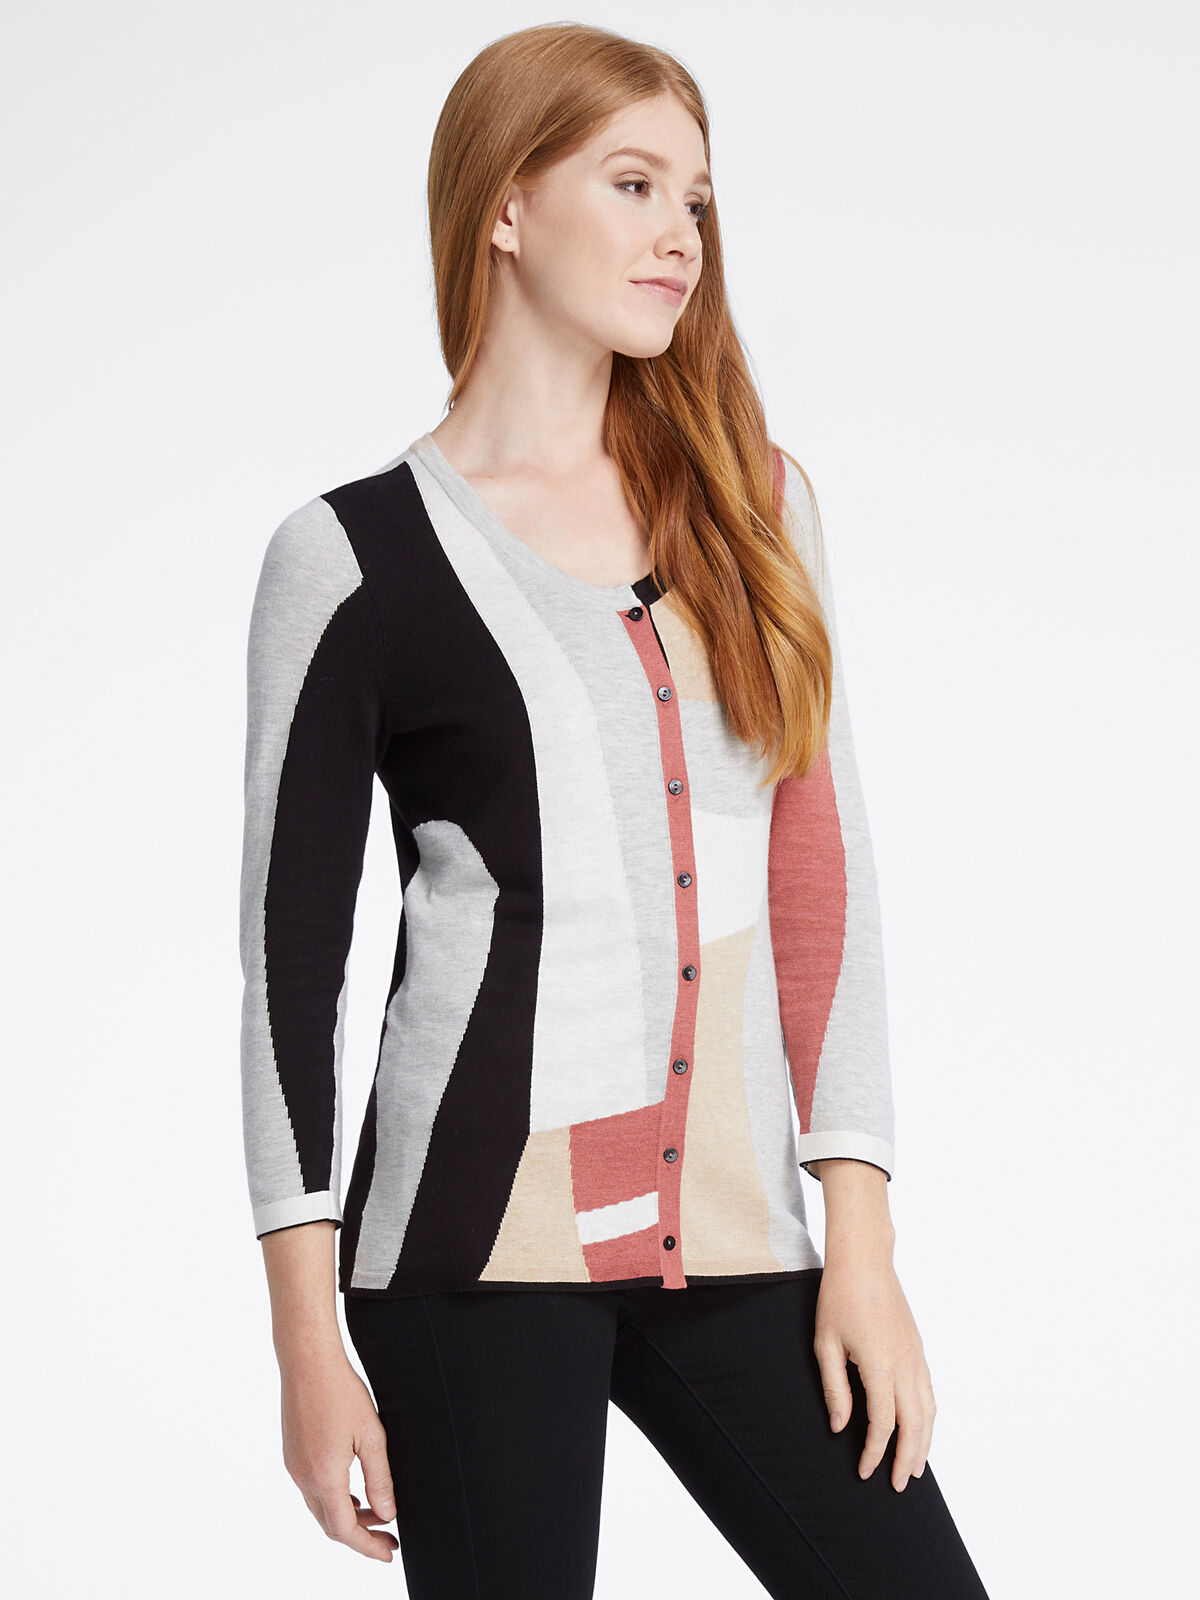 Come Together Cardigan